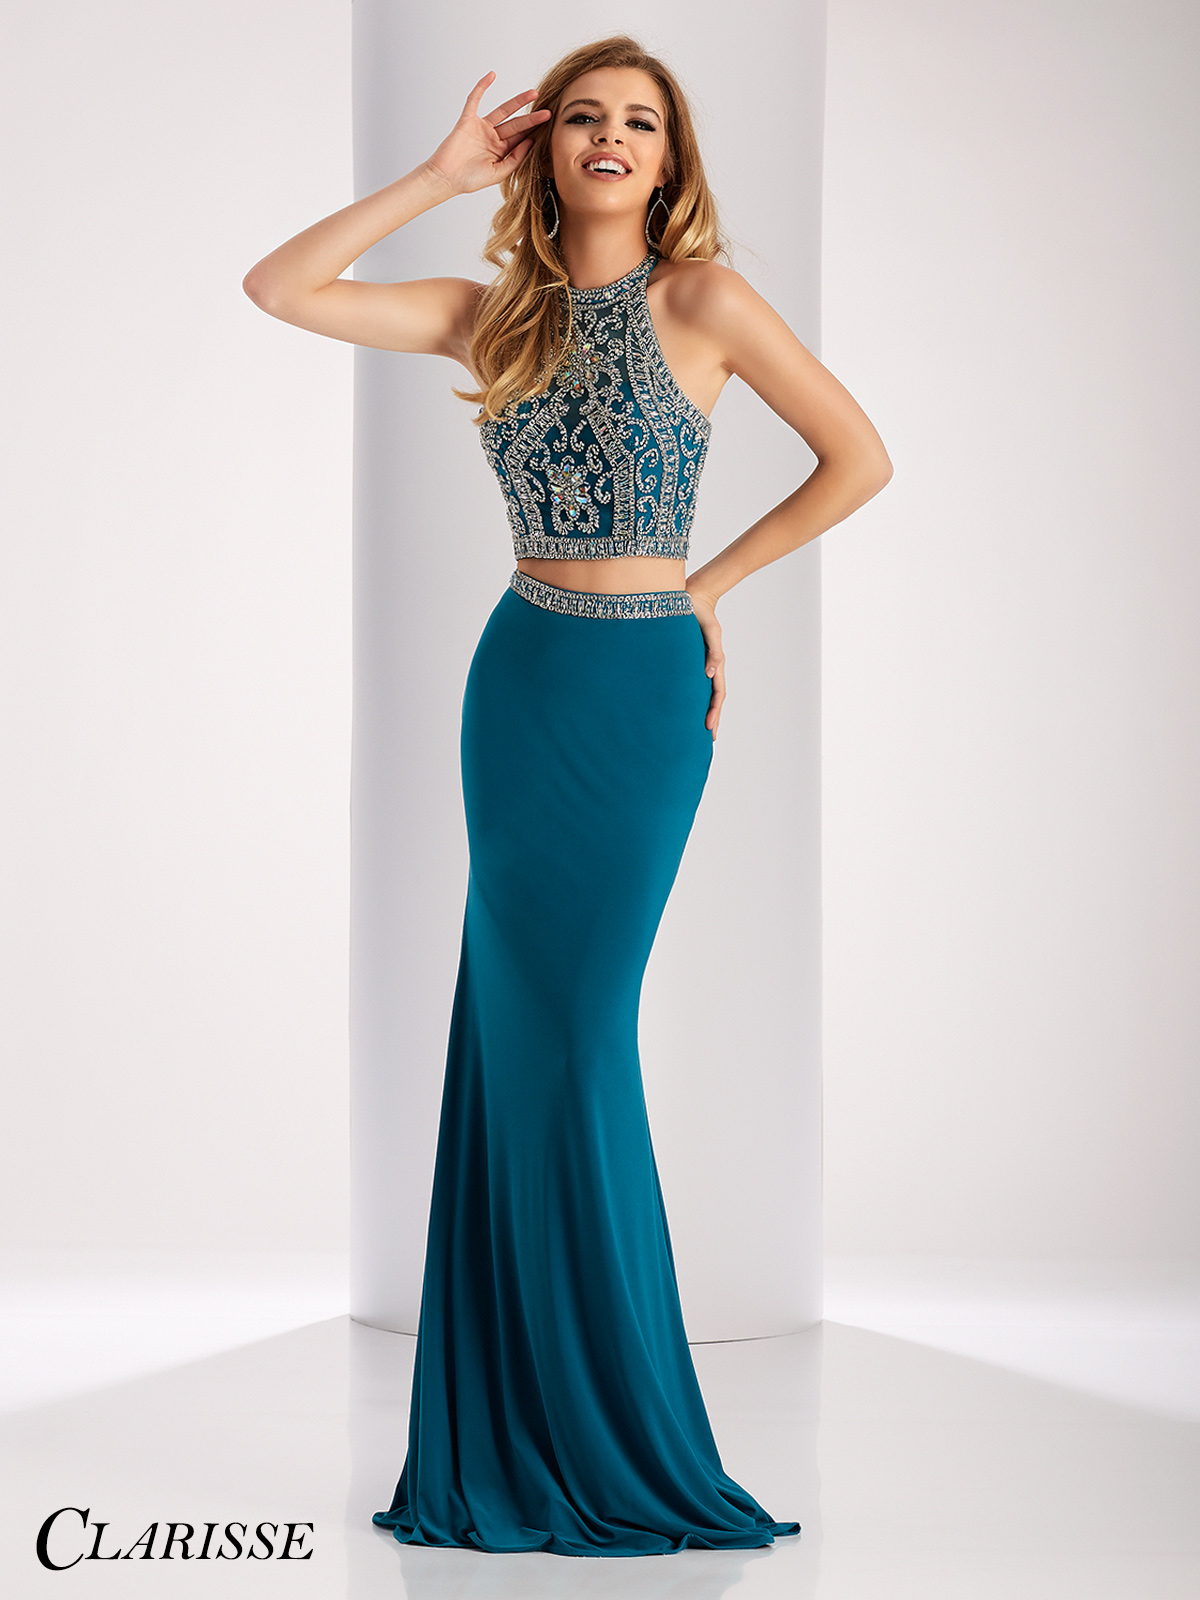 Clarisse Two Piece Prom Dress | Promgirl.net